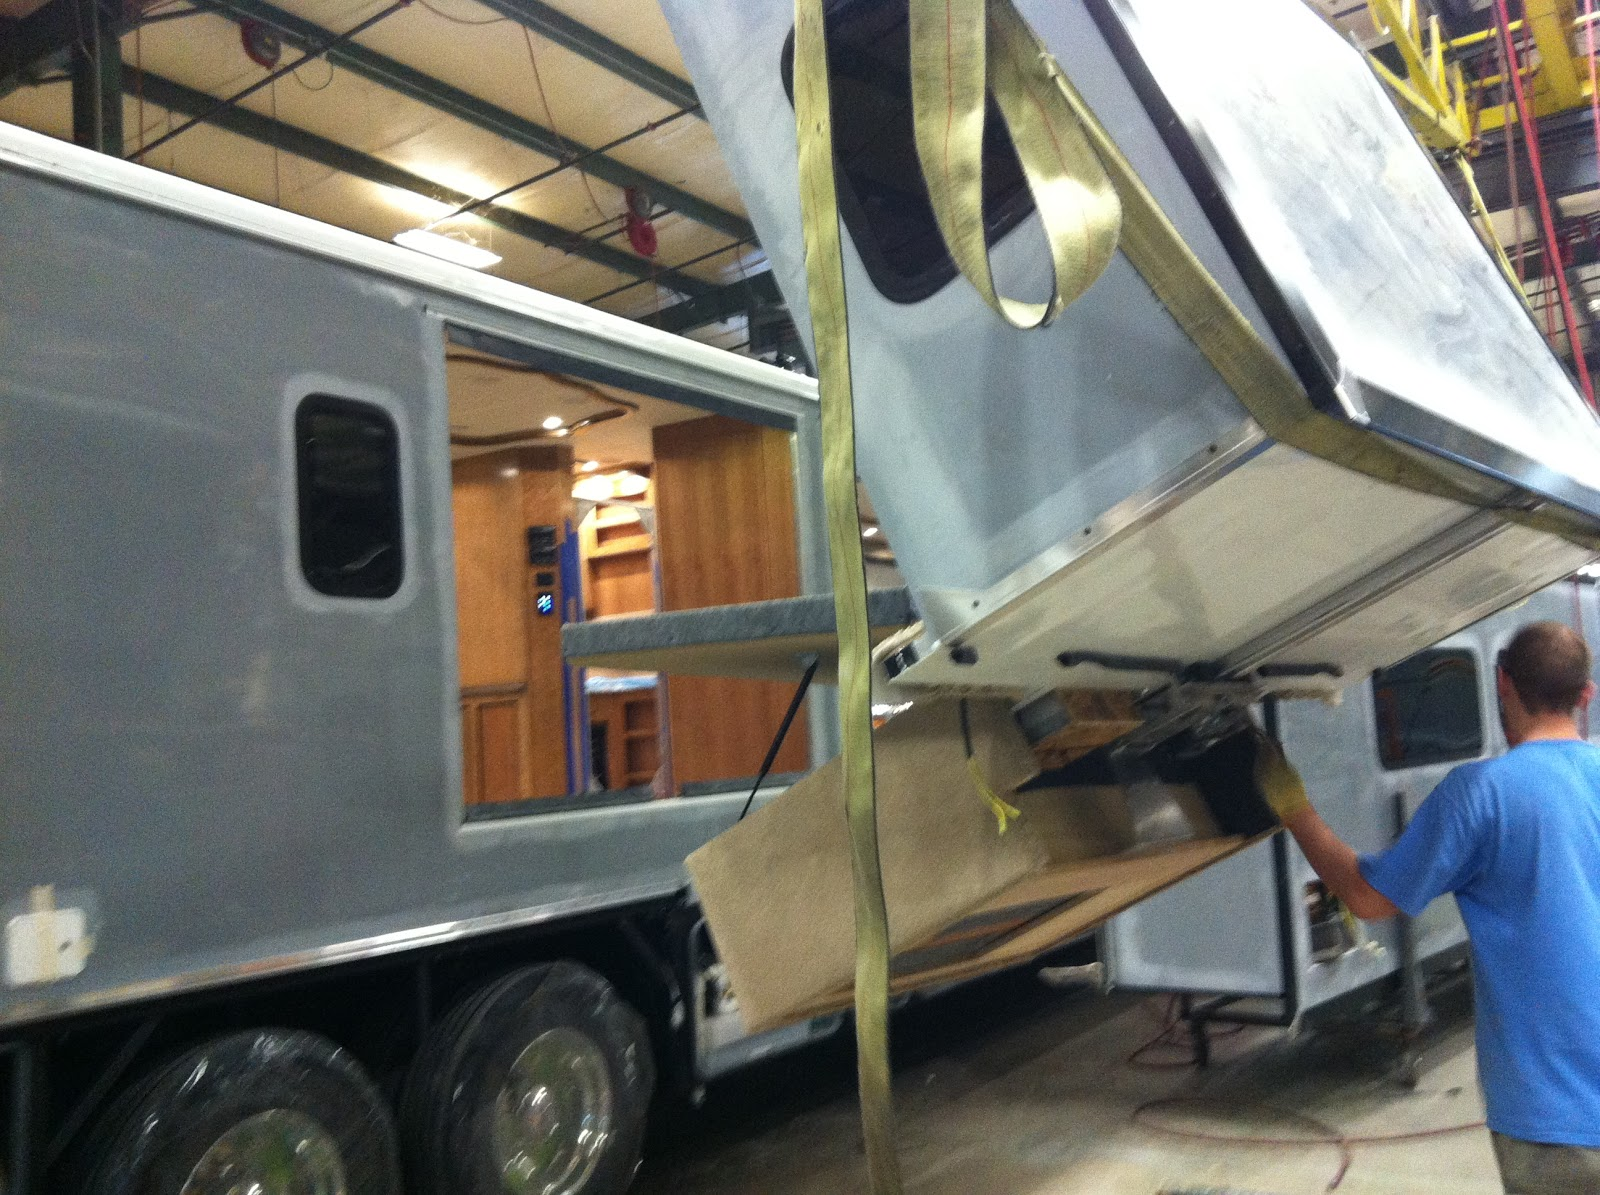 Living a dream build motorhome